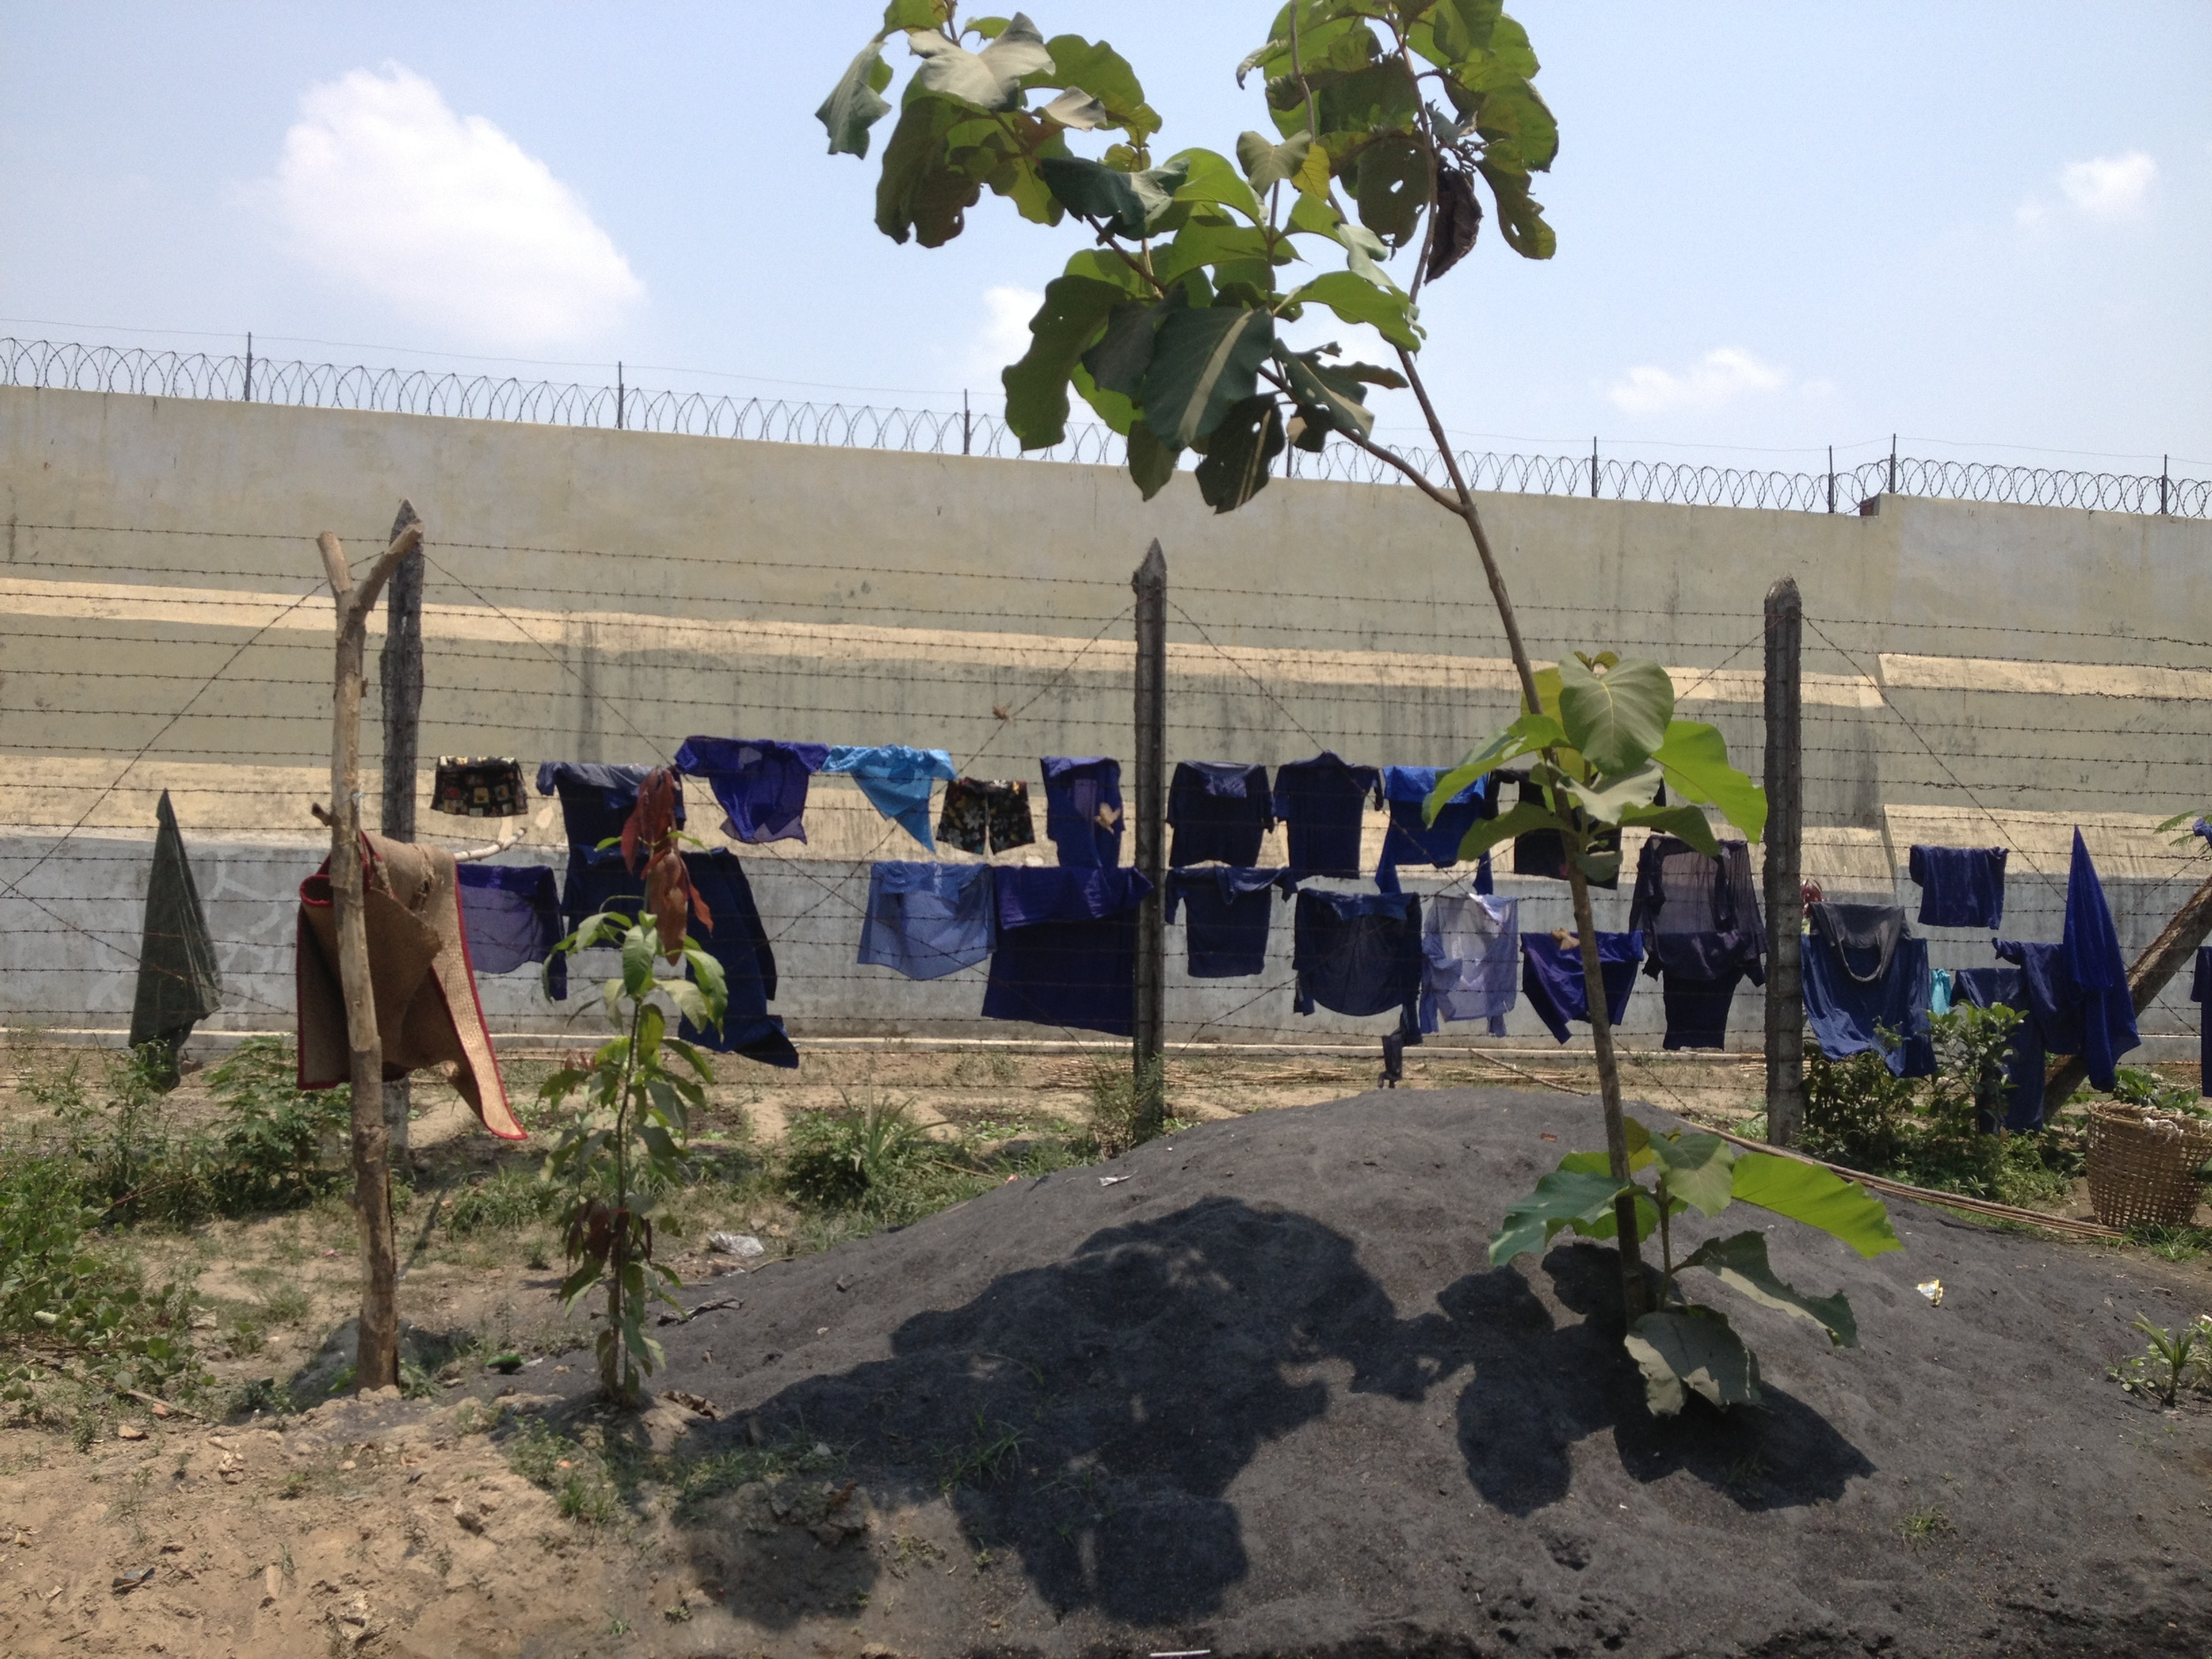 Inmates' laundry, Insein Prison, April 2013